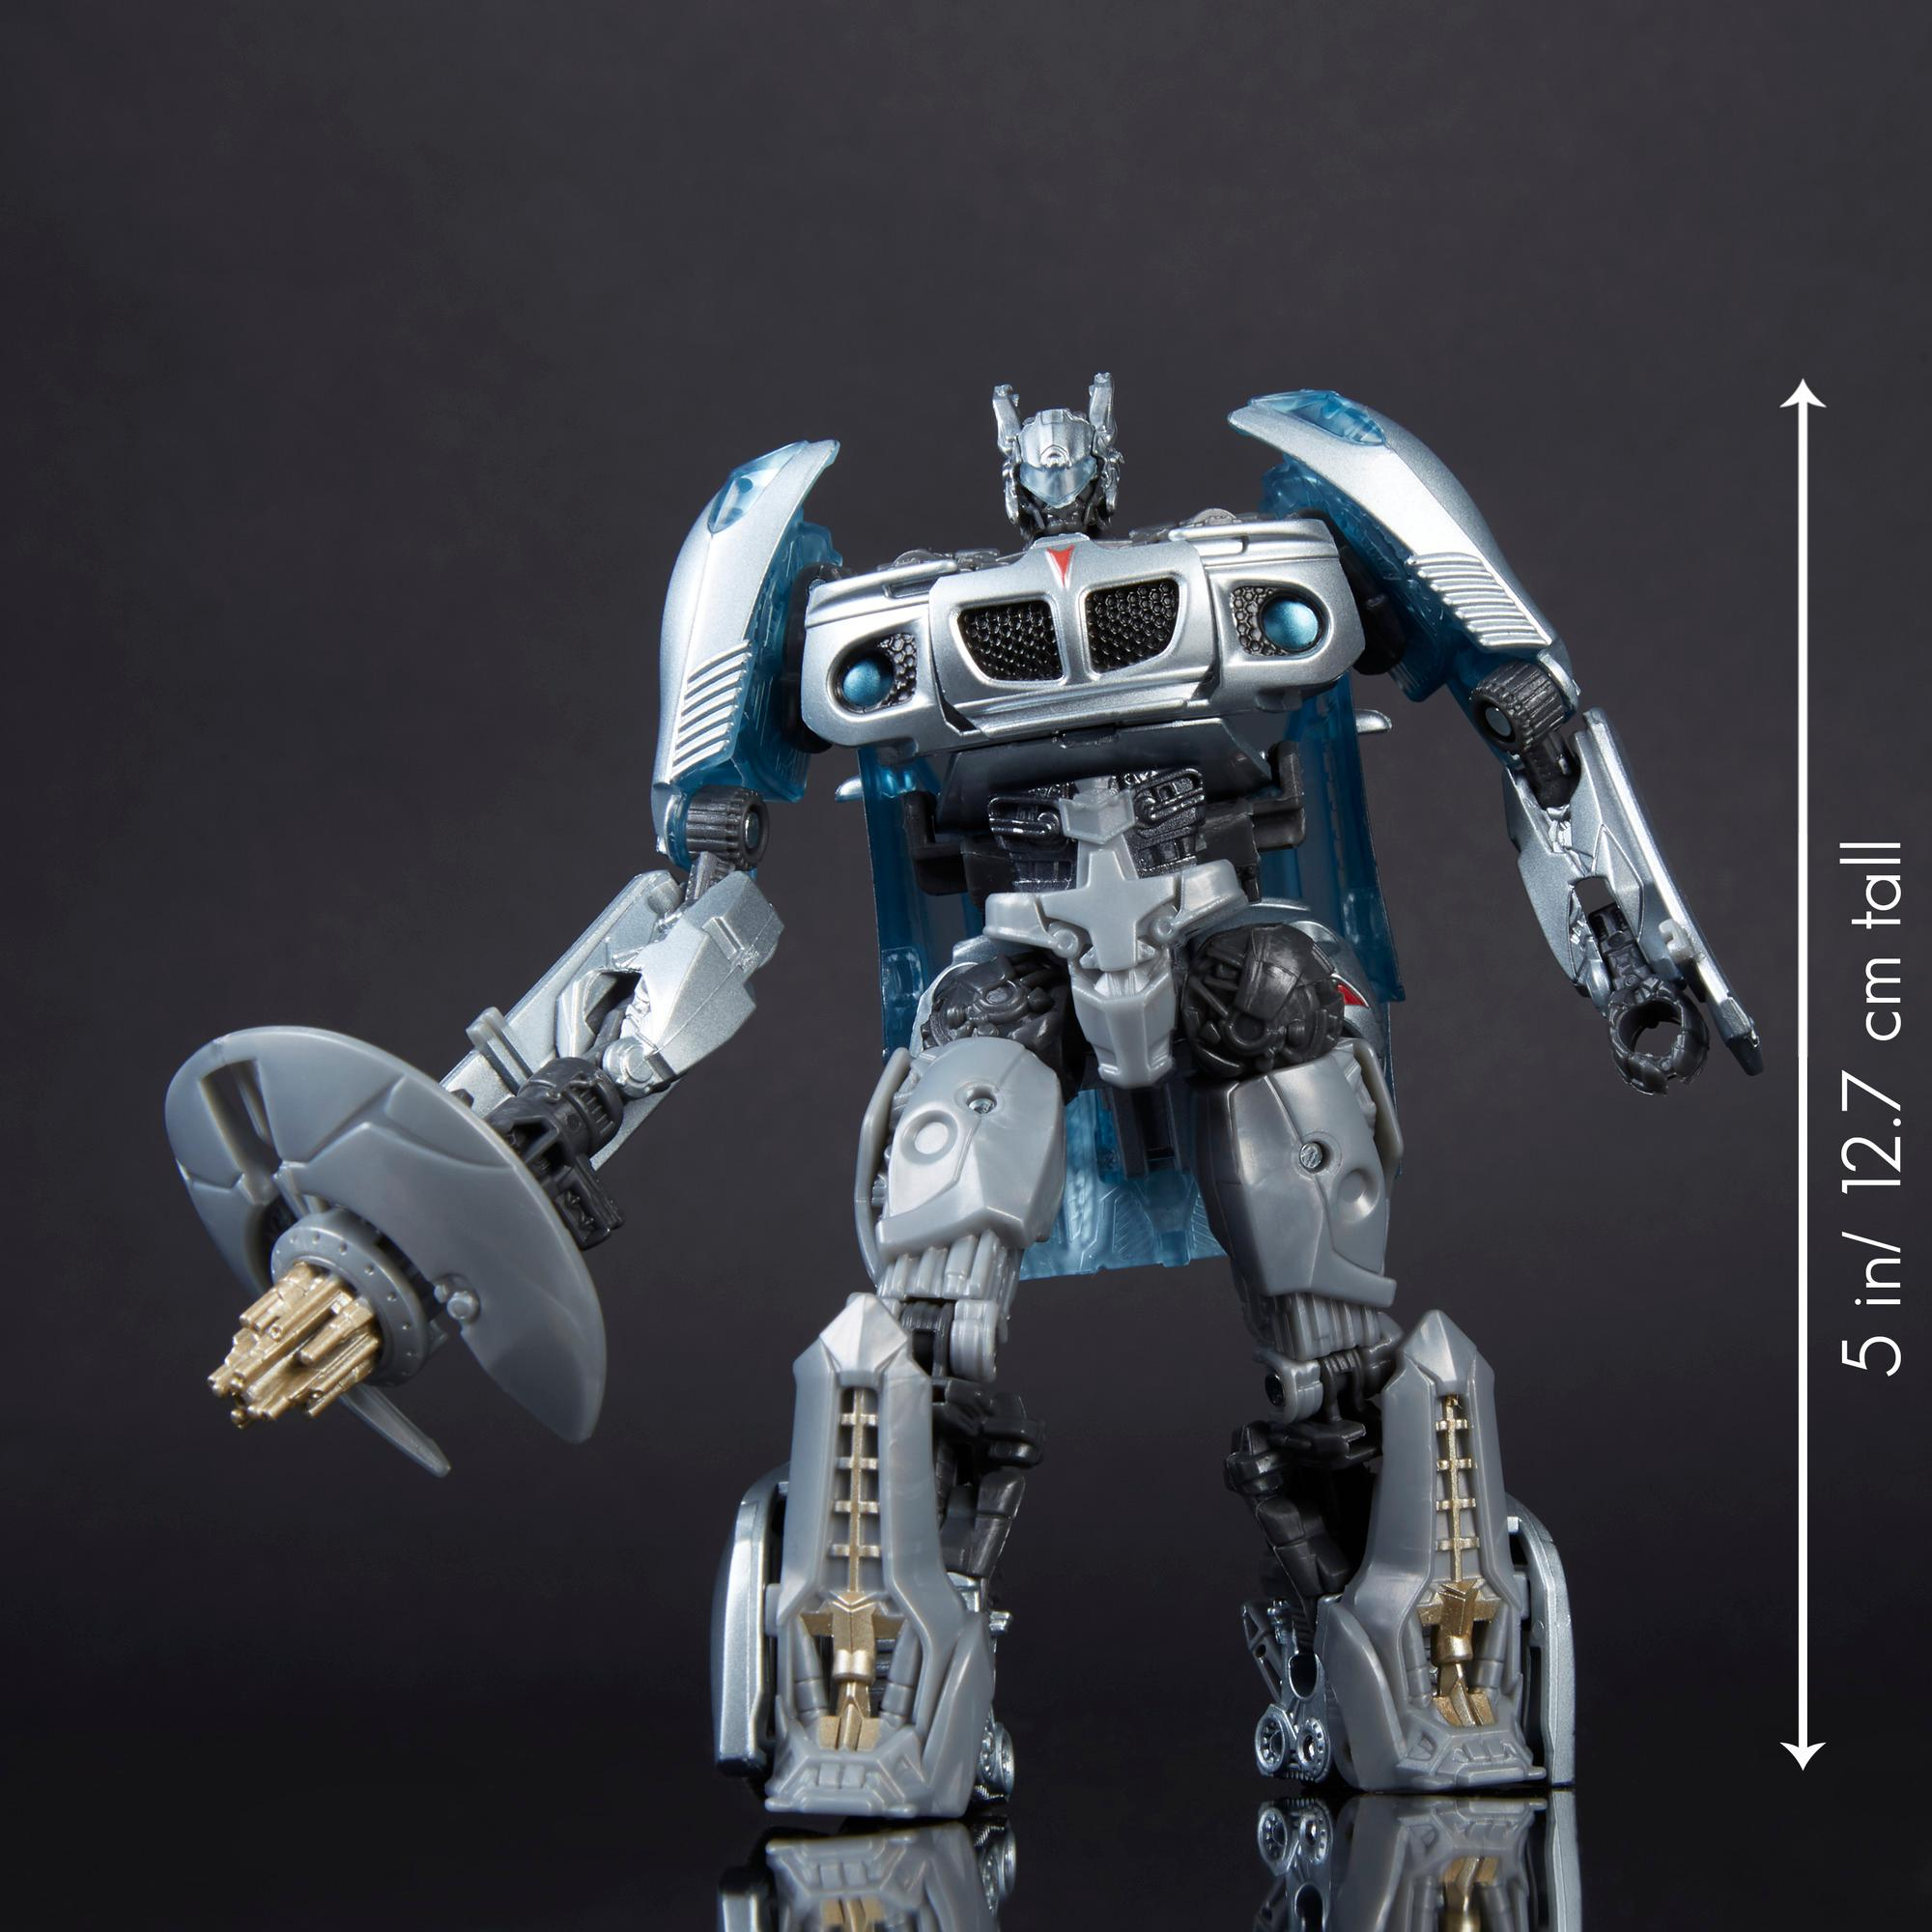 Bettwäsche Transformers Spielzeug Transformers Studio Series 10 Deluxe Class Movie 1 Autobot Jazz Triadecont.com.br